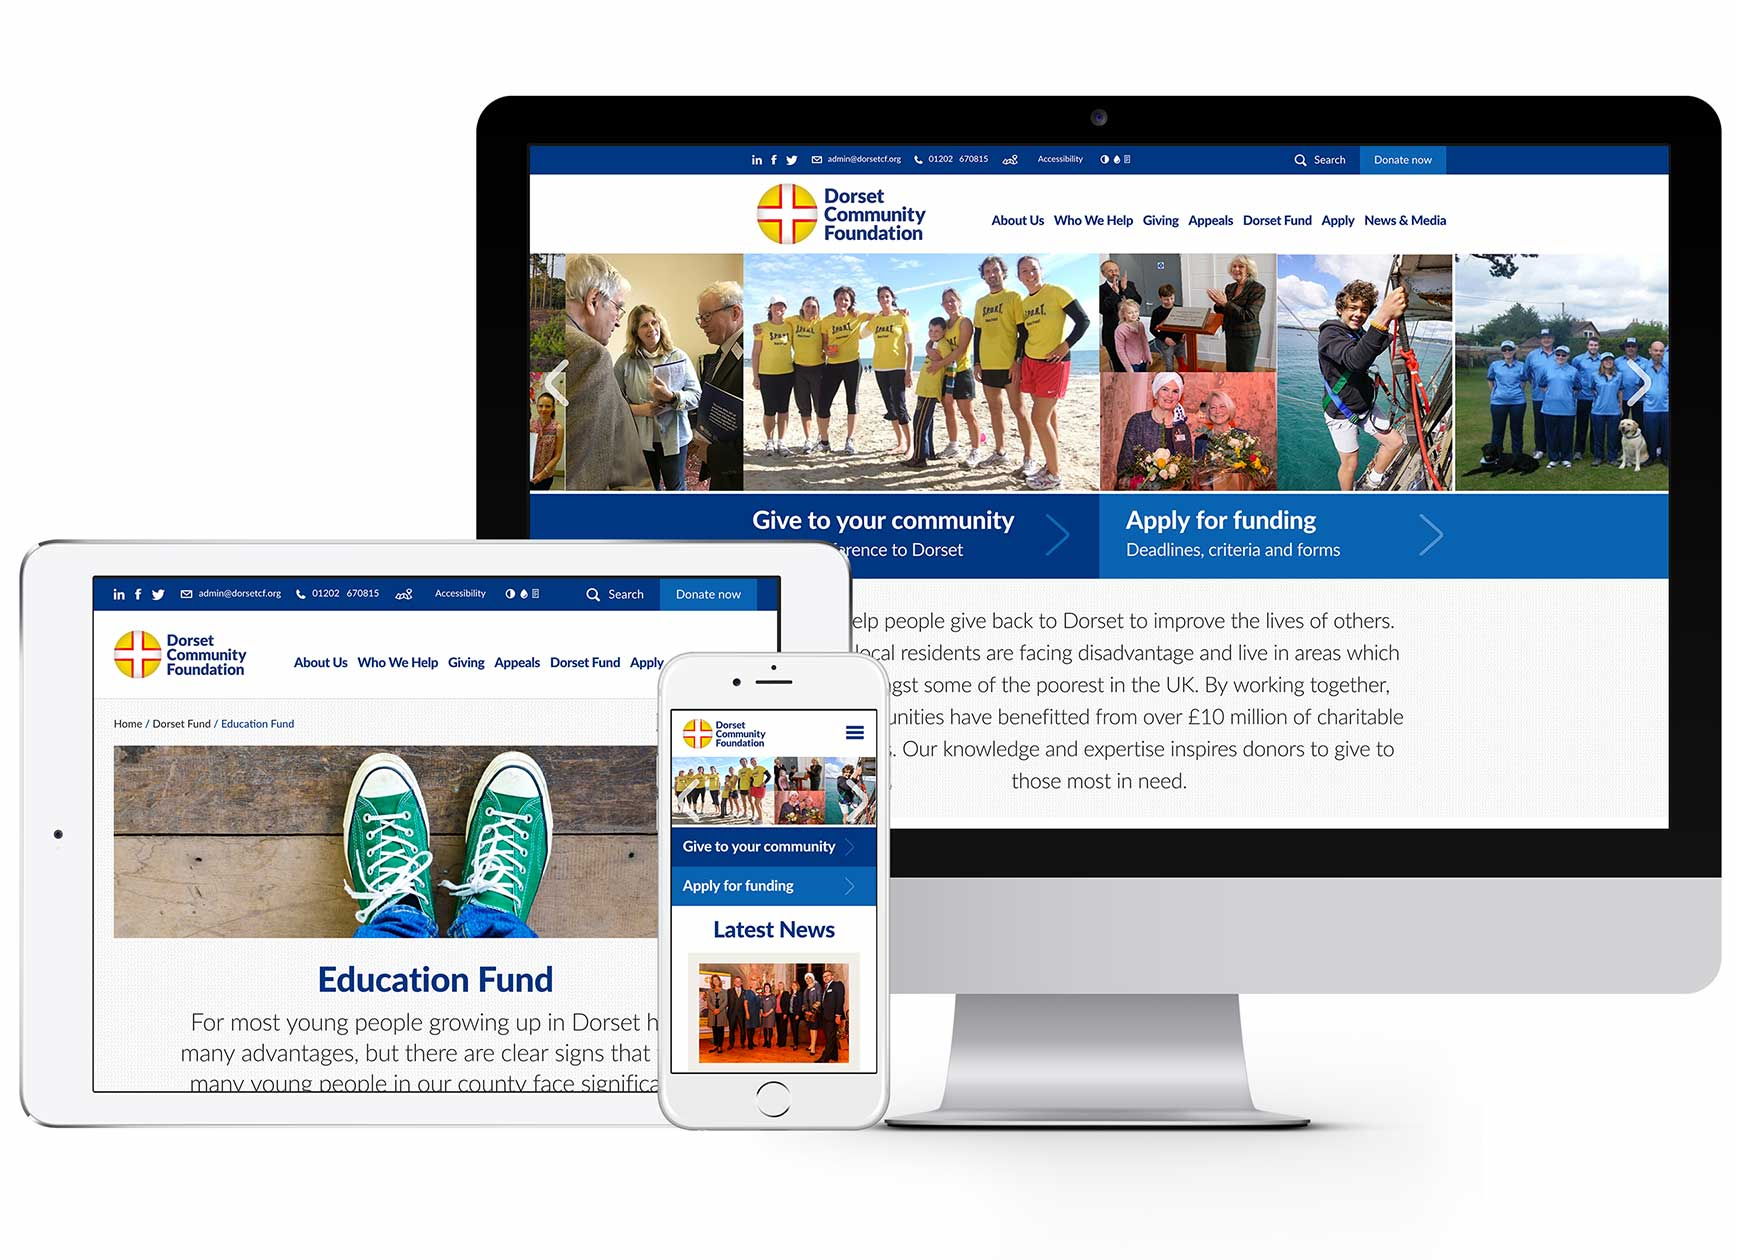 Brand refresh featured on Dorset Community Foundation website redesign